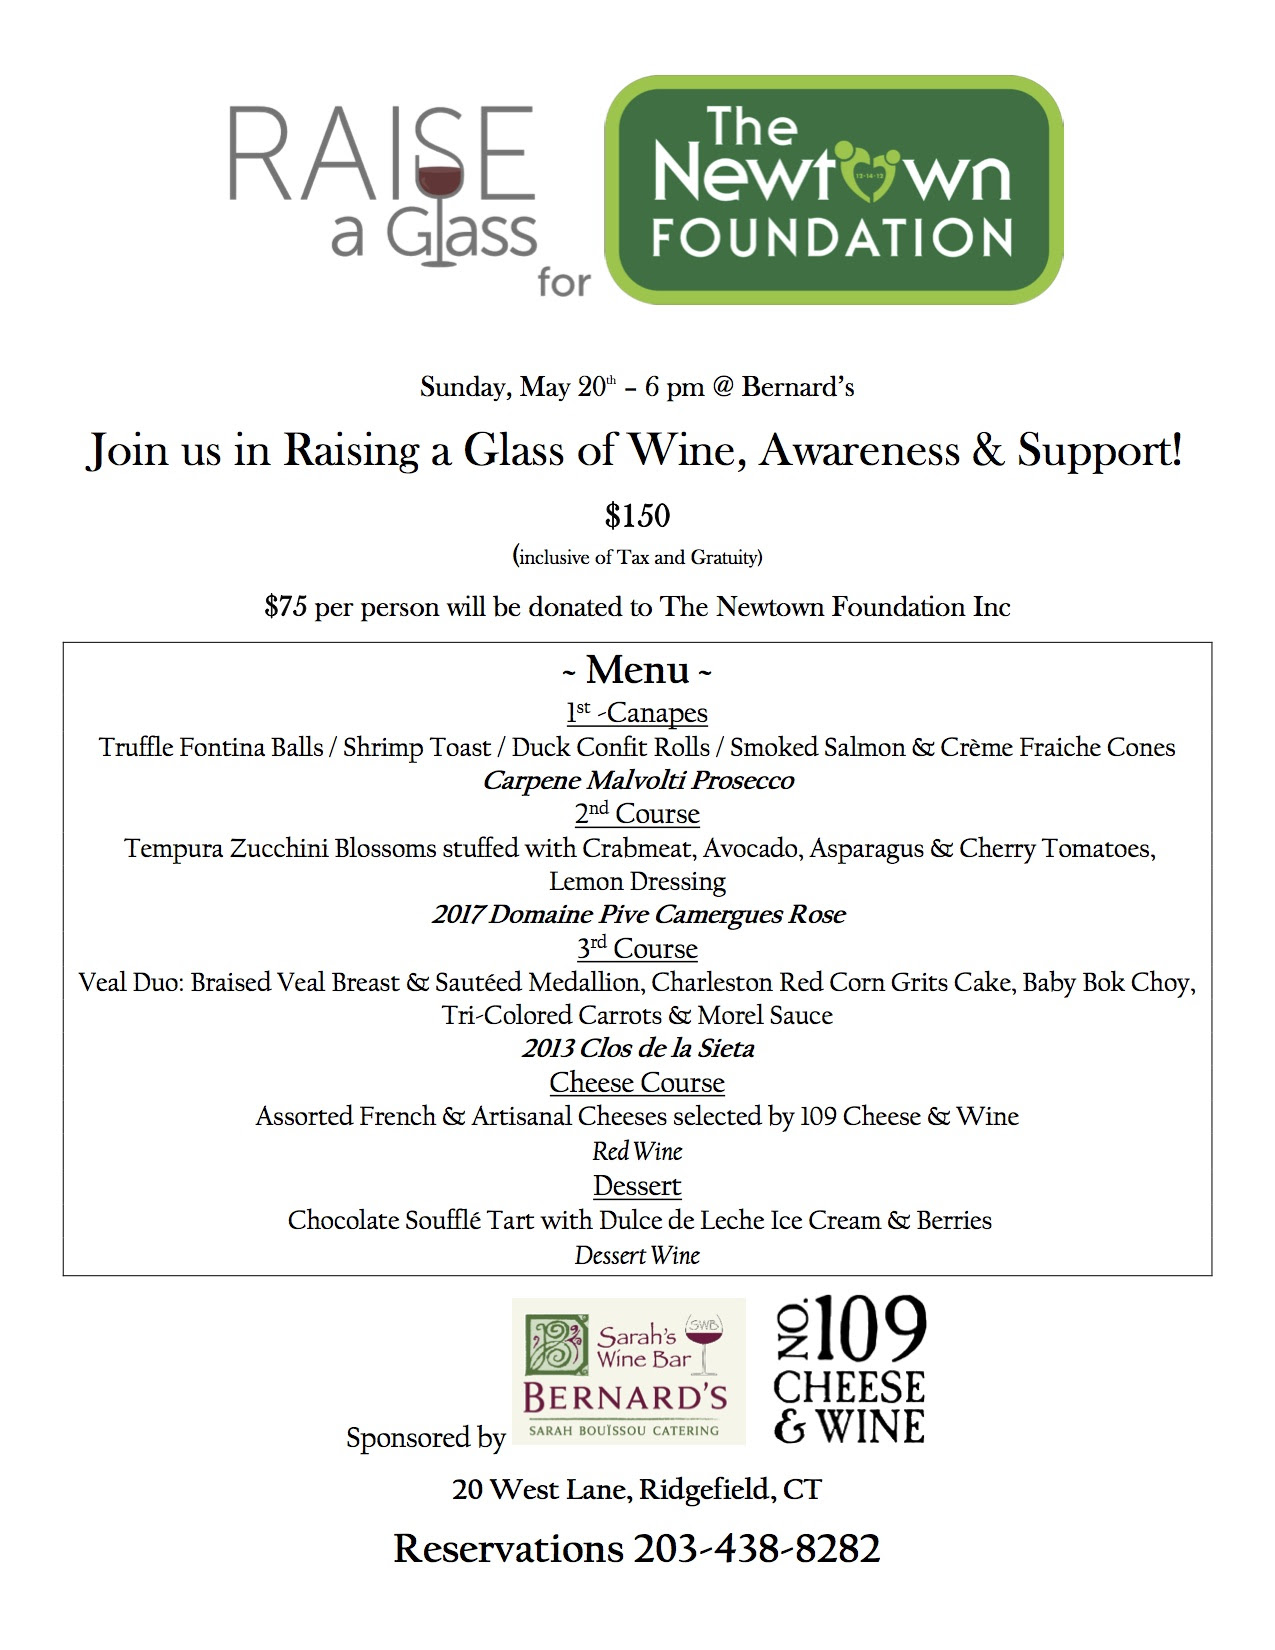 Support the Newtown Foundation on May 20 at Bernard's, a few